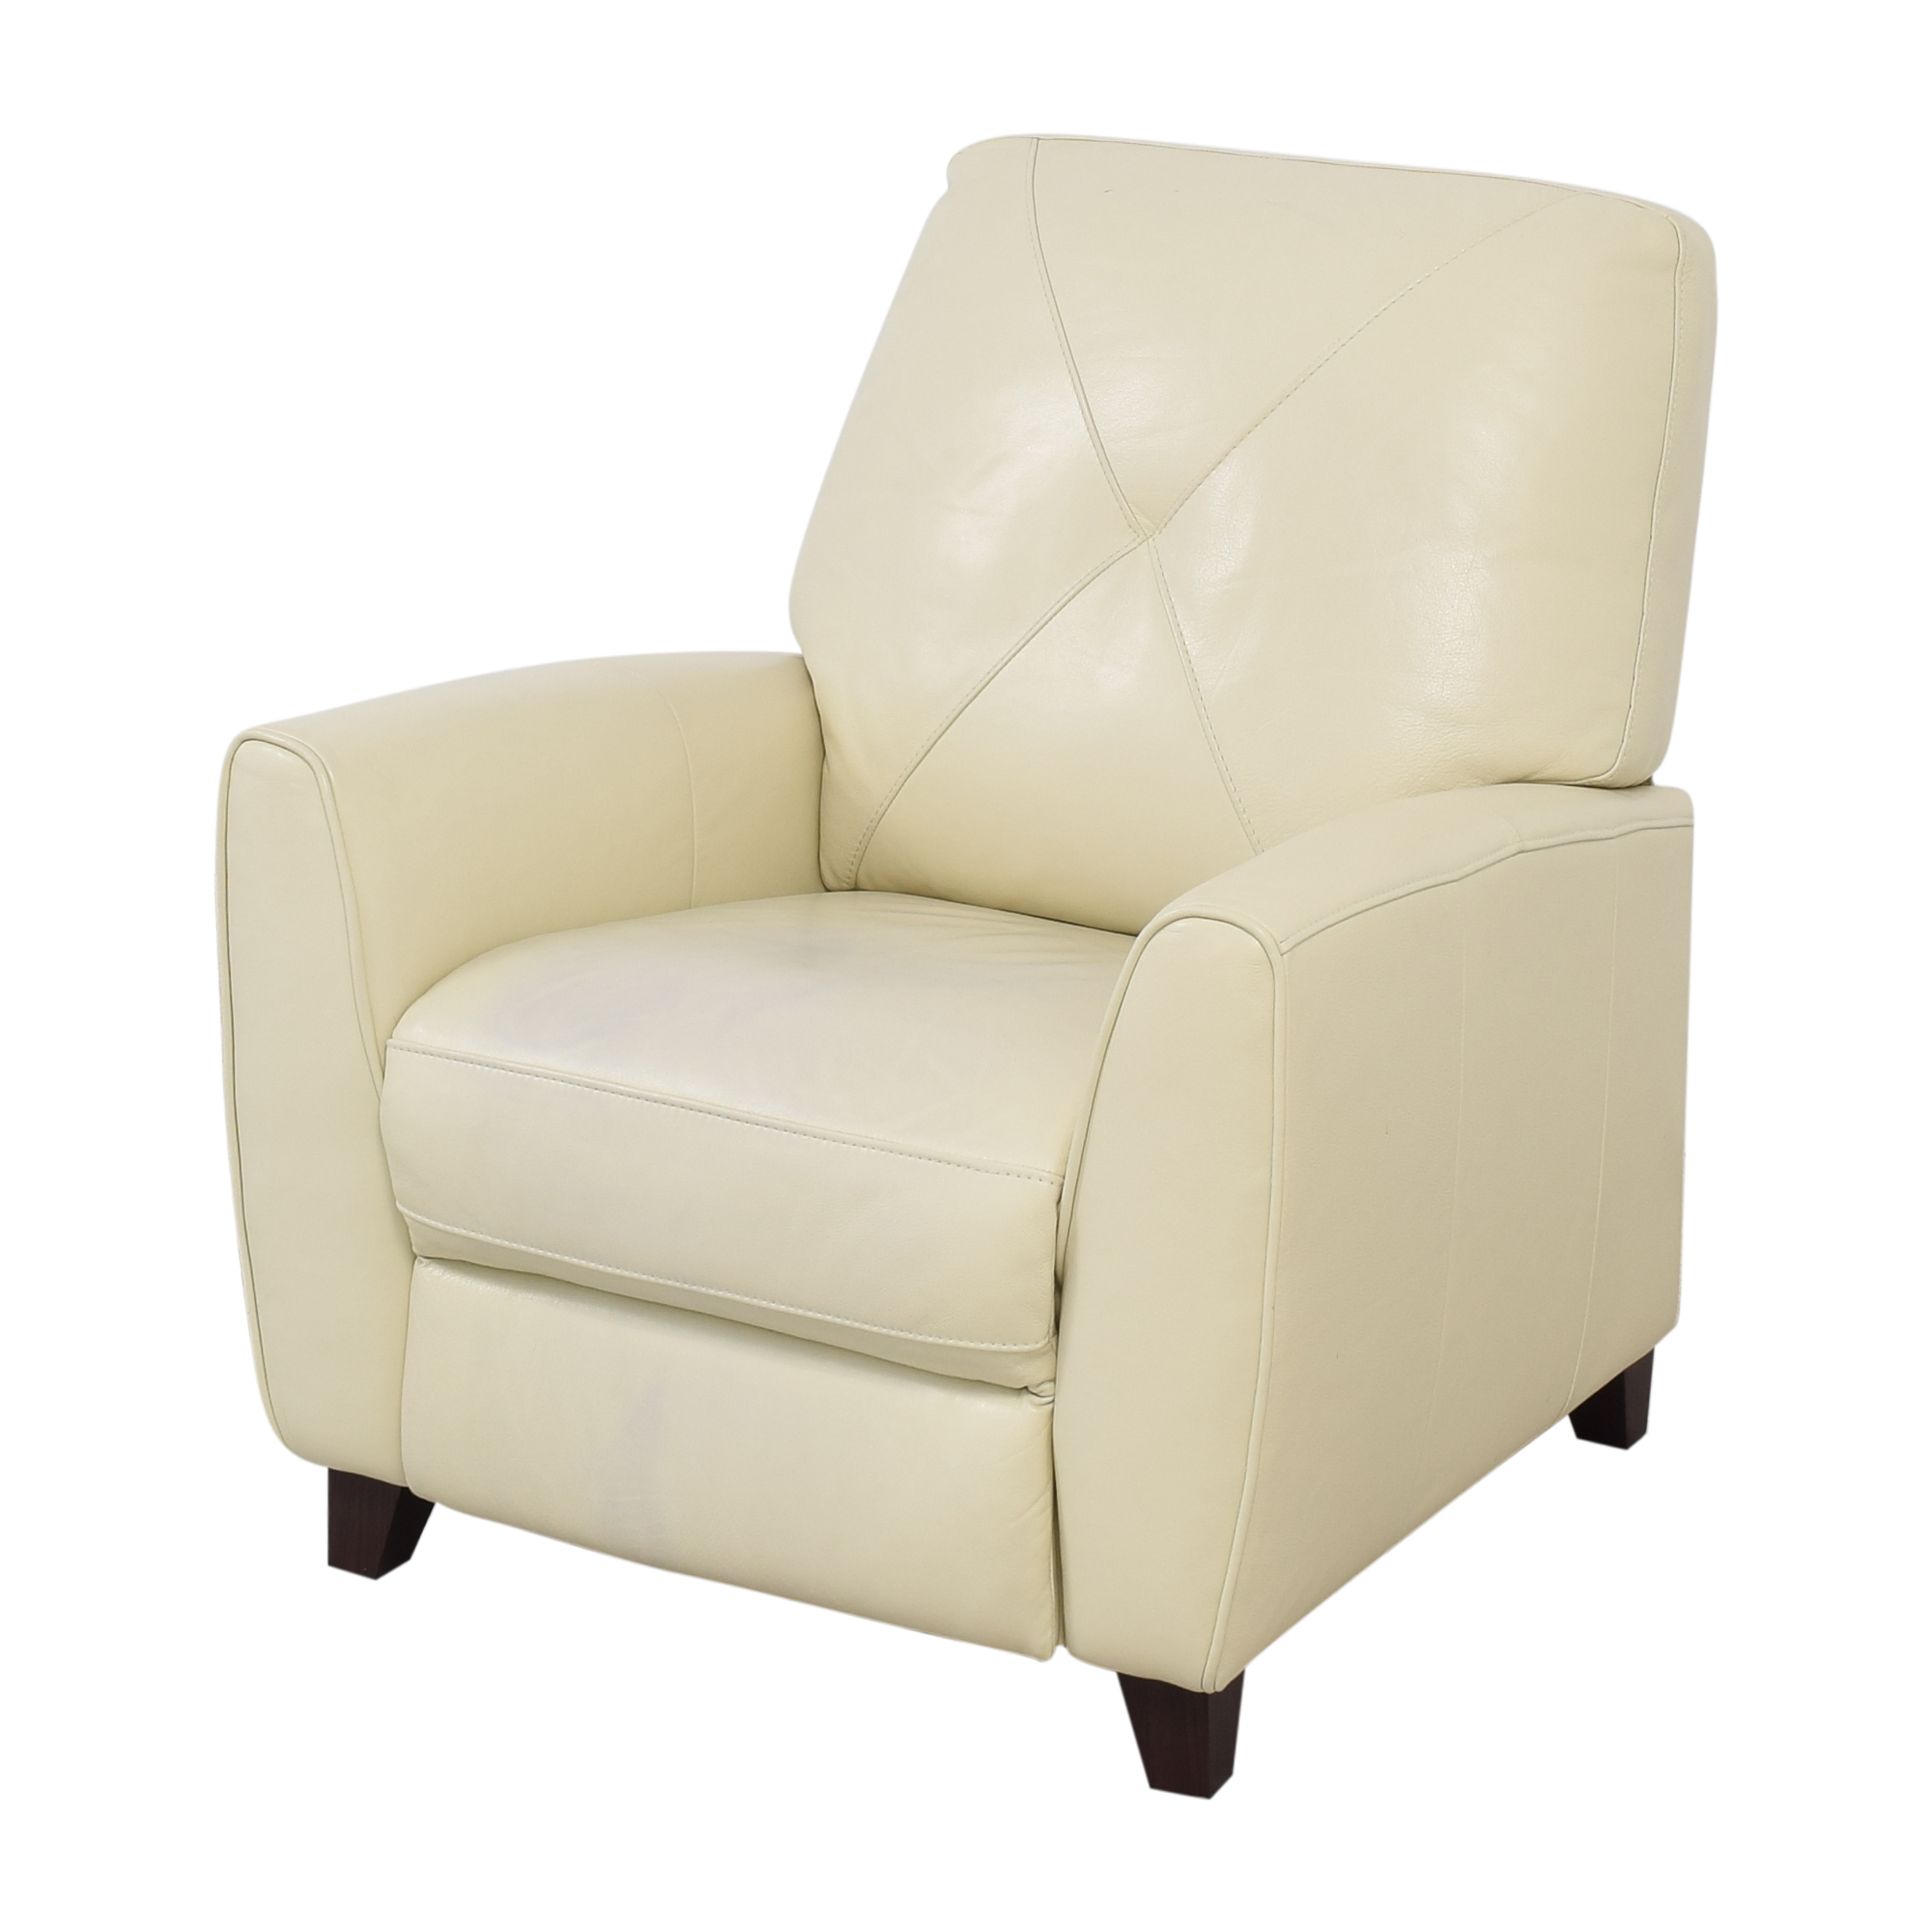 Macy's Macy's Myia Pushback Reclining Chair Accent Chairs